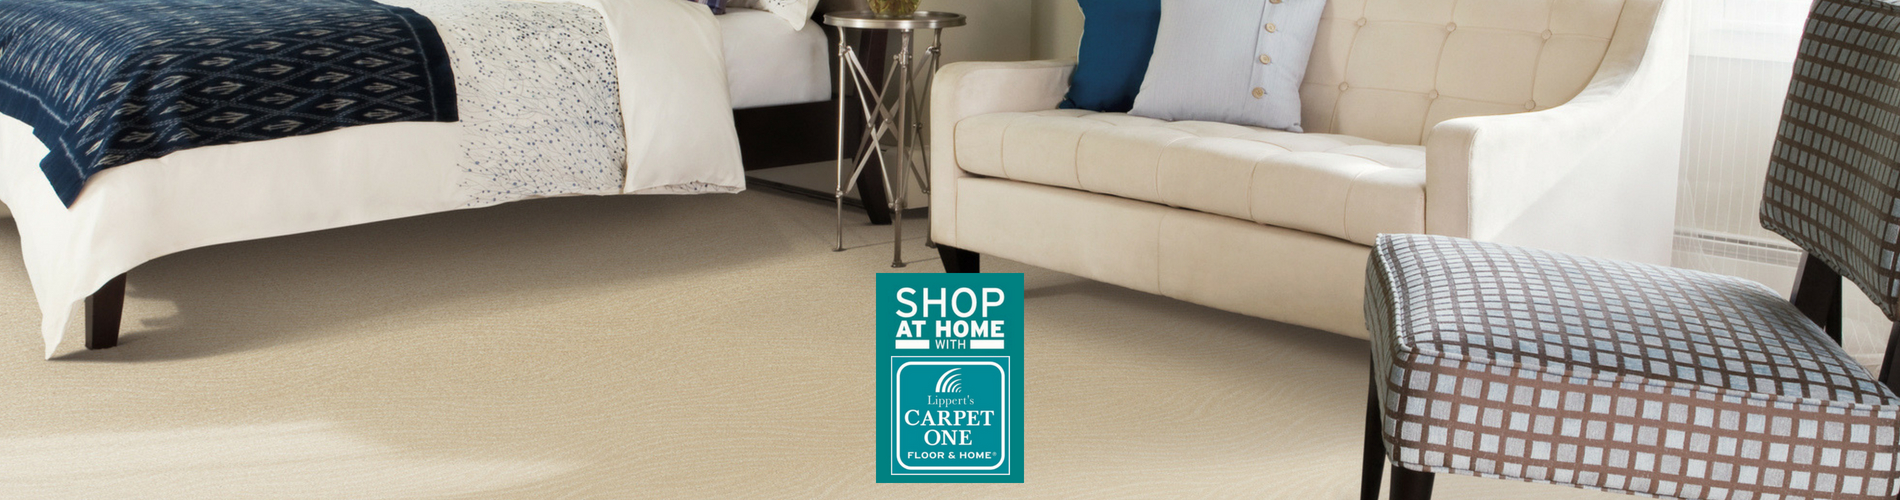 Shop Home Carpet Flooring Stores Shop A Local Carpet One Floor Home